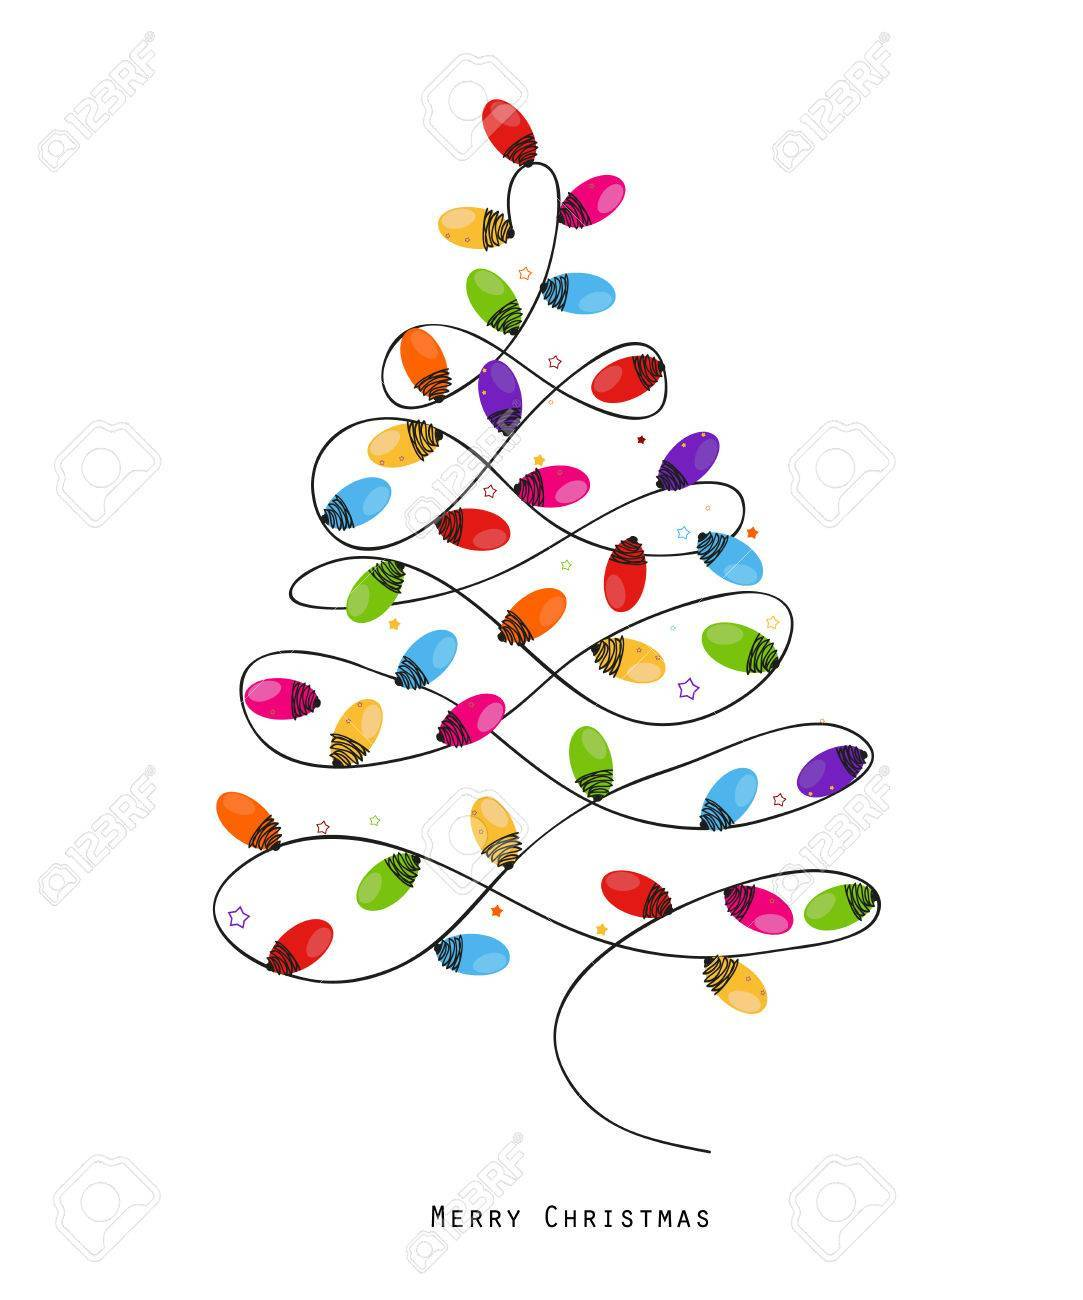 Christmas tree light clipart 4 » Clipart Portal.